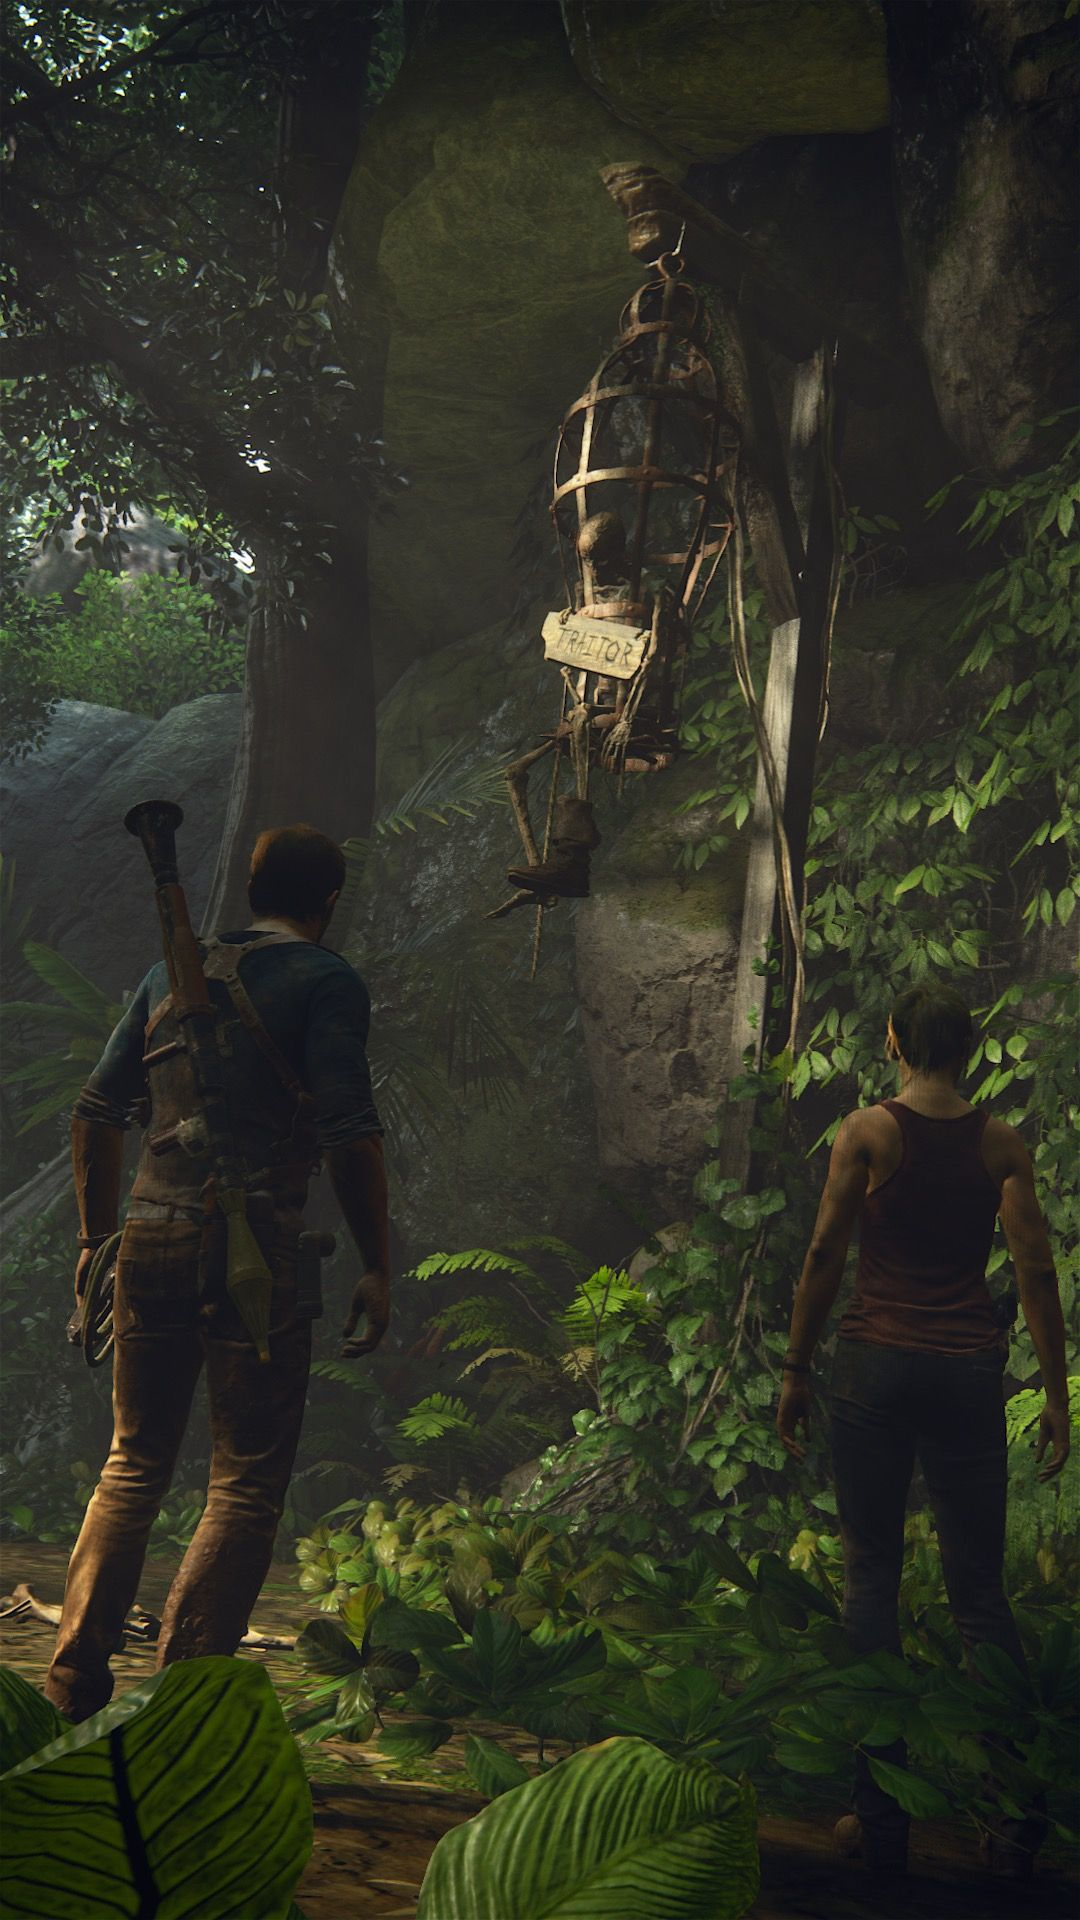 Download Uncharted 4 Android Background On High Quality Wallpaper On Hdwallpaper9 Com Iphone Android Wallpaper Uncharted Background High Quality Wallpapers